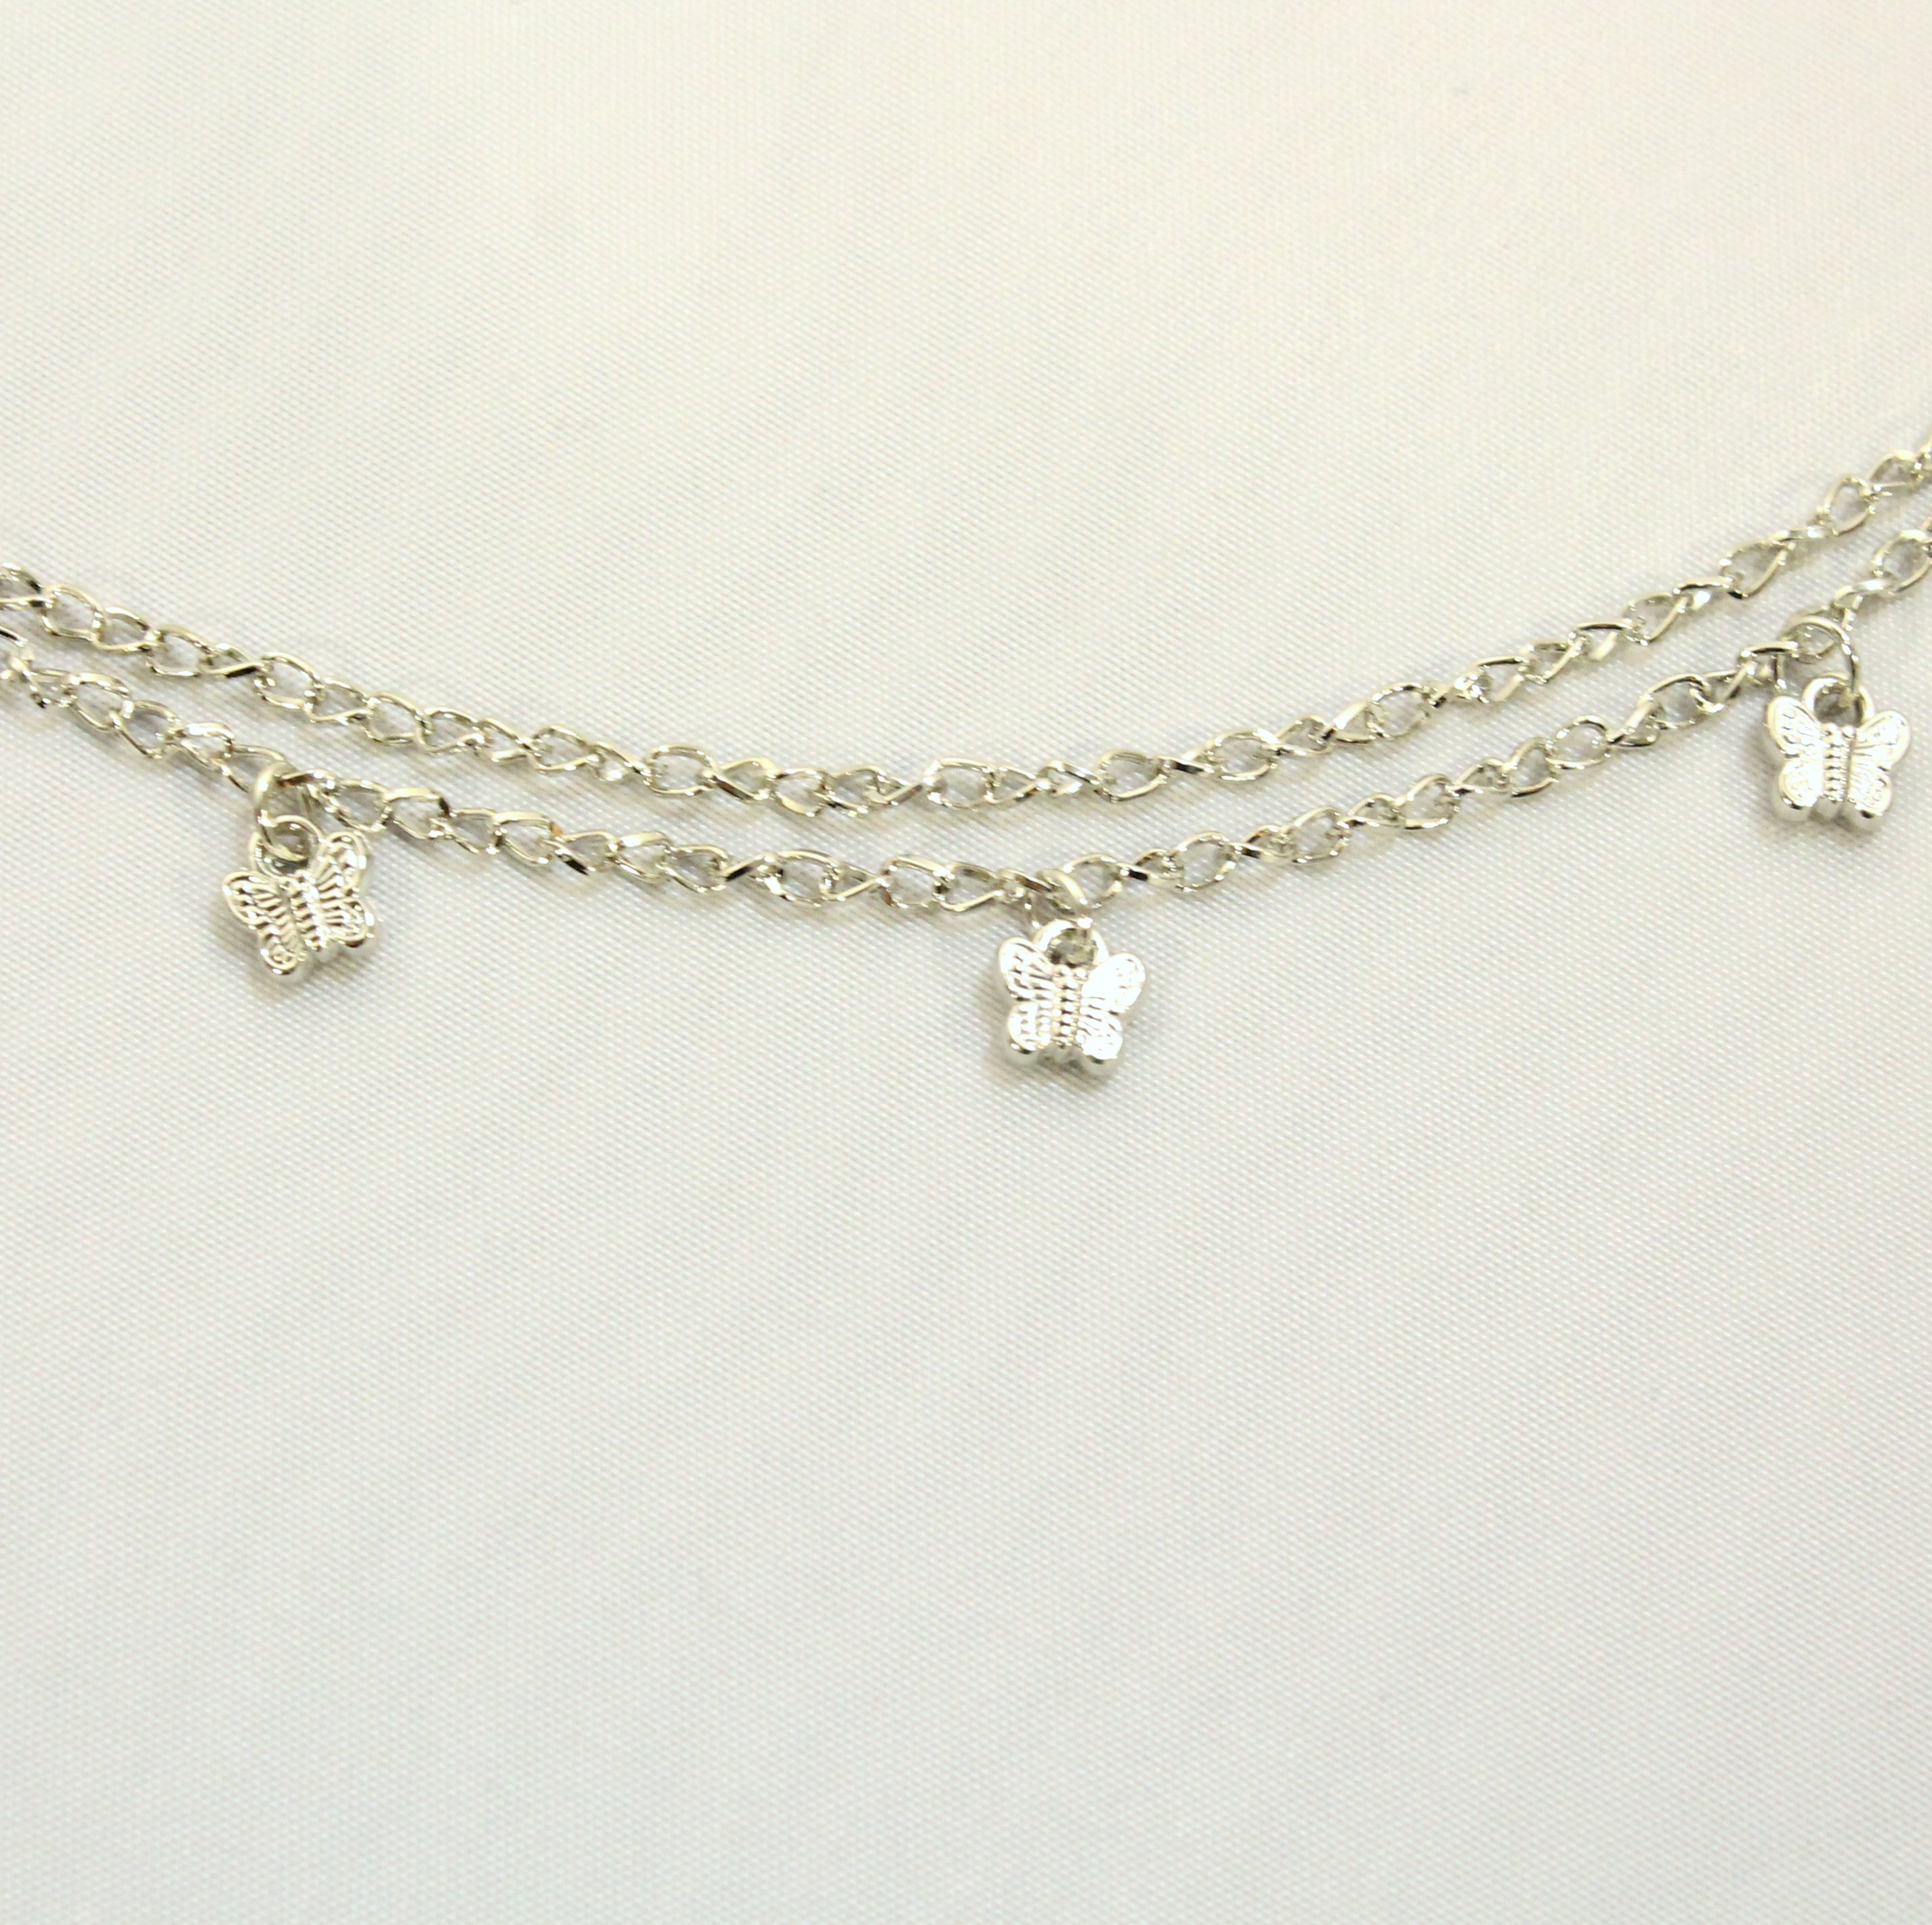 Tal - Butterfly anklet